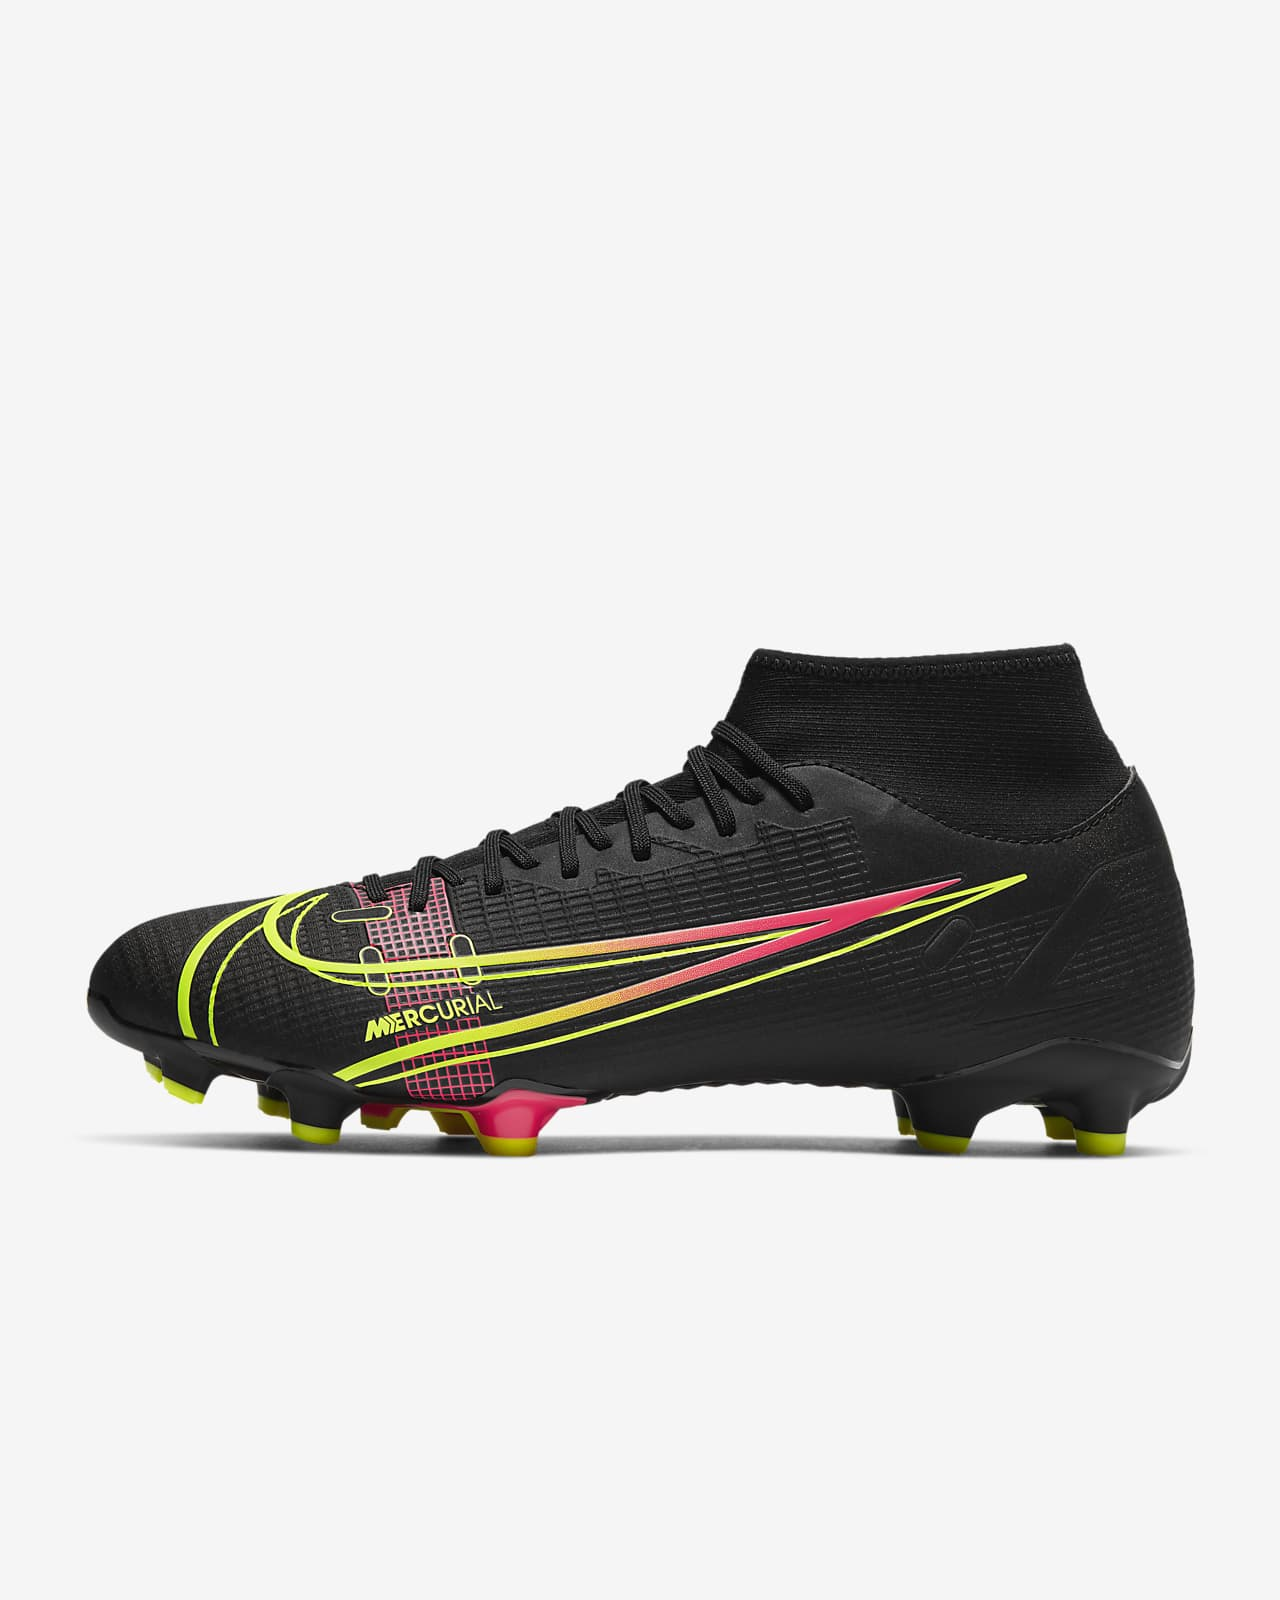 Chaussure de football multi-surfaces à crampons Nike Mercurial Superfly 8 Academy MG